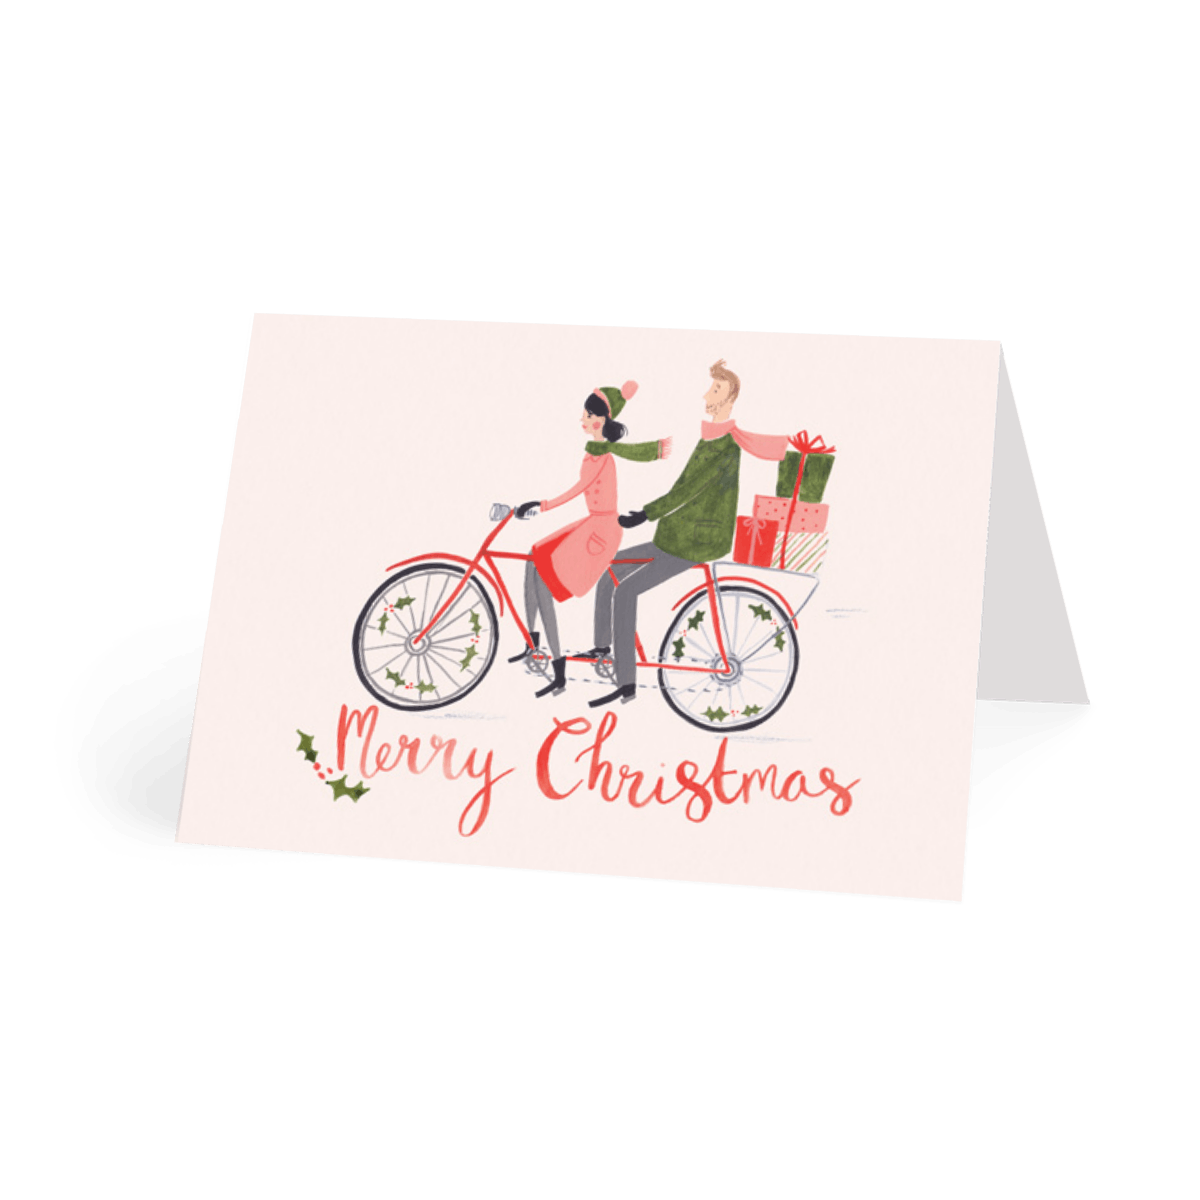 Https%3a%2f%2fwww.papier.com%2fproduct image%2f11673%2f14%2fchristmas tandem 2961 front 1475596894.png?ixlib=rb 1.1